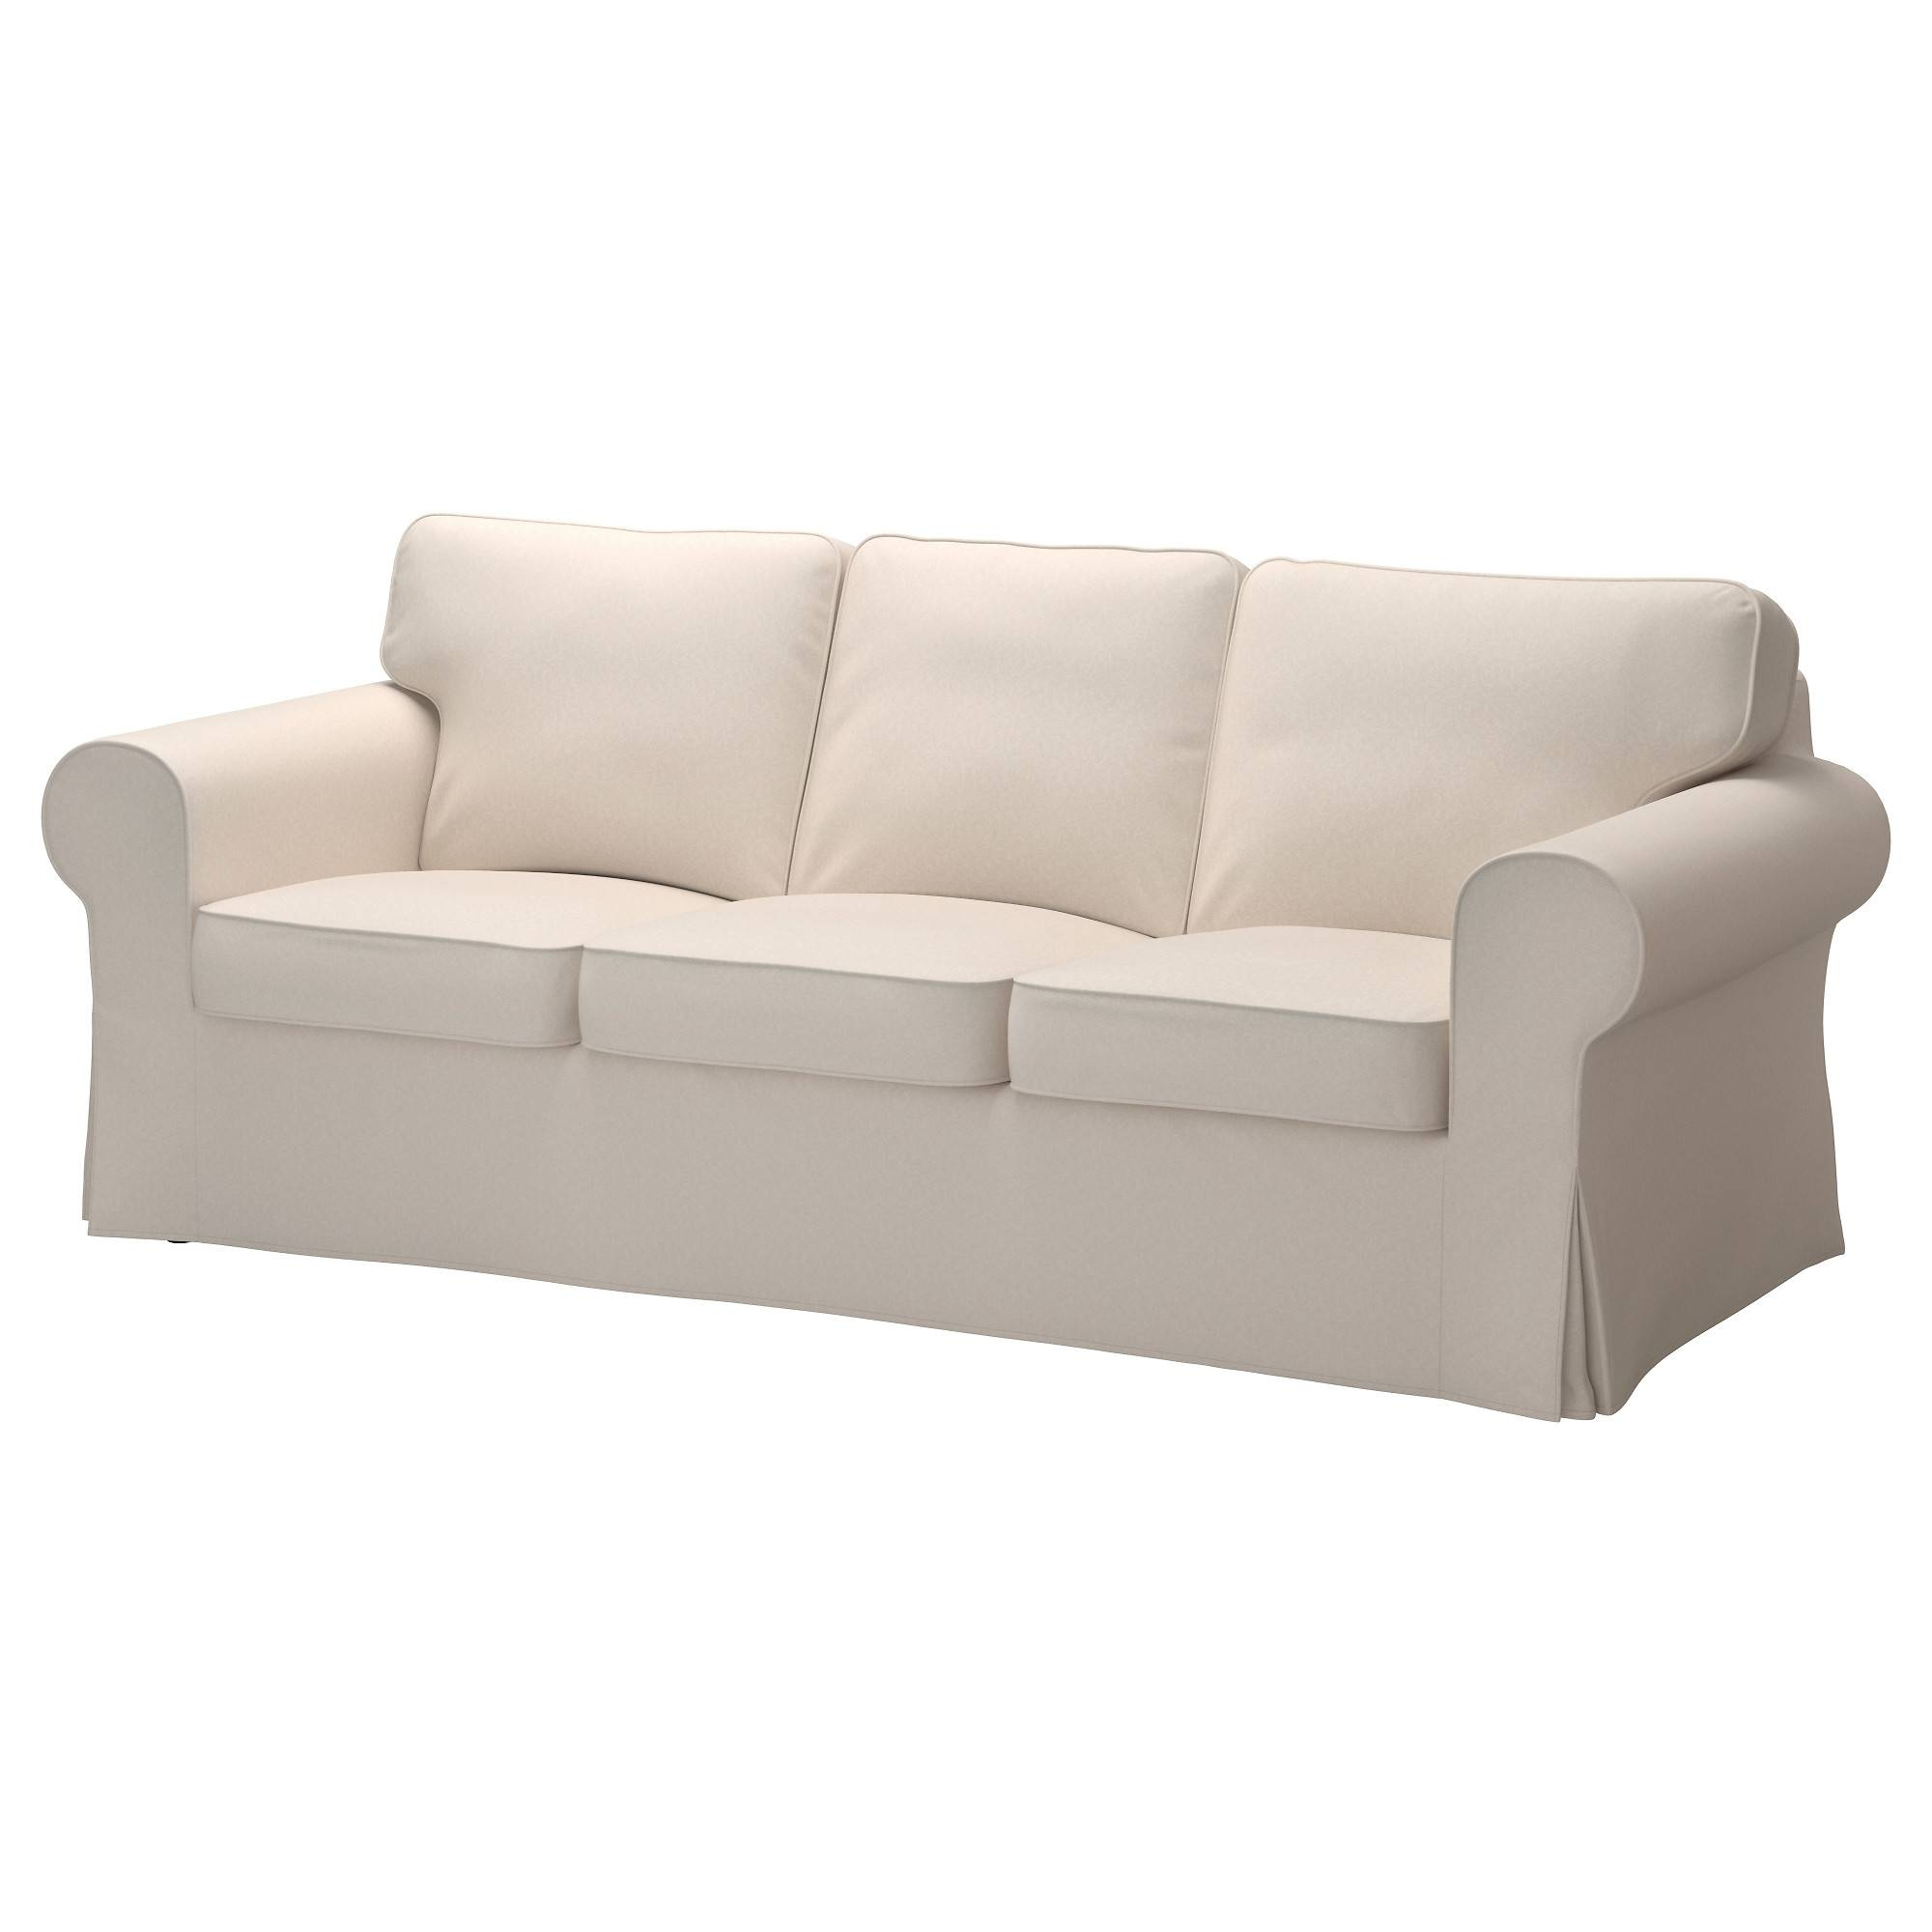 Fabric Sofas - Modern & Contemporary - Ikea within 68 Inch Sofas (Image 9 of 30)